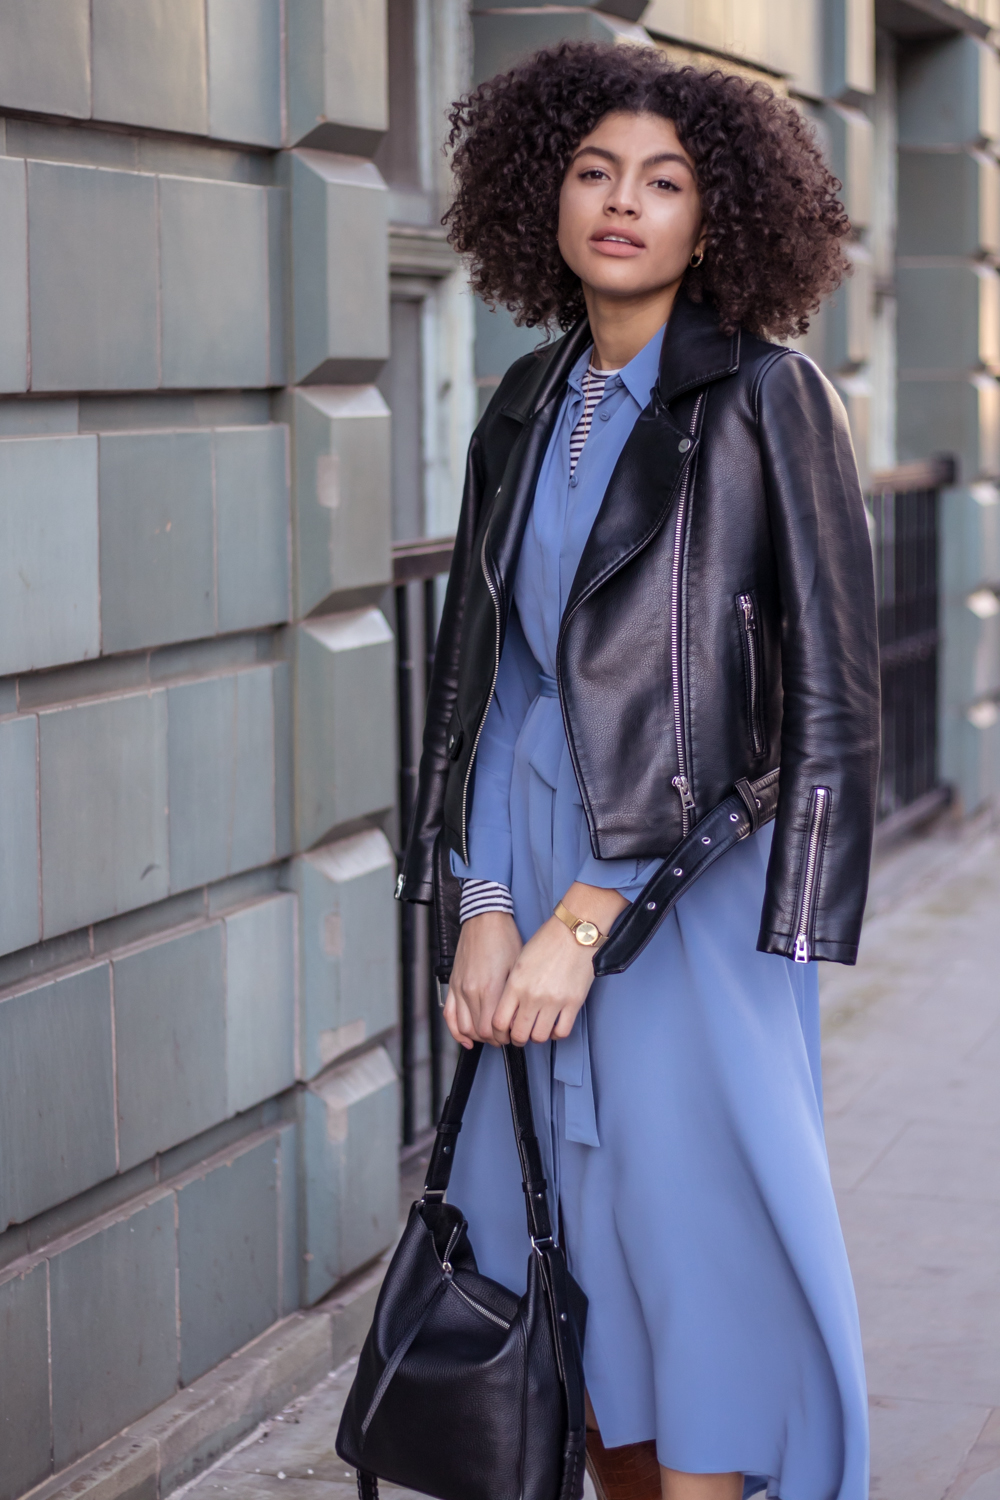 Finery cornflower blue shirt dress layering biker jacket outfit